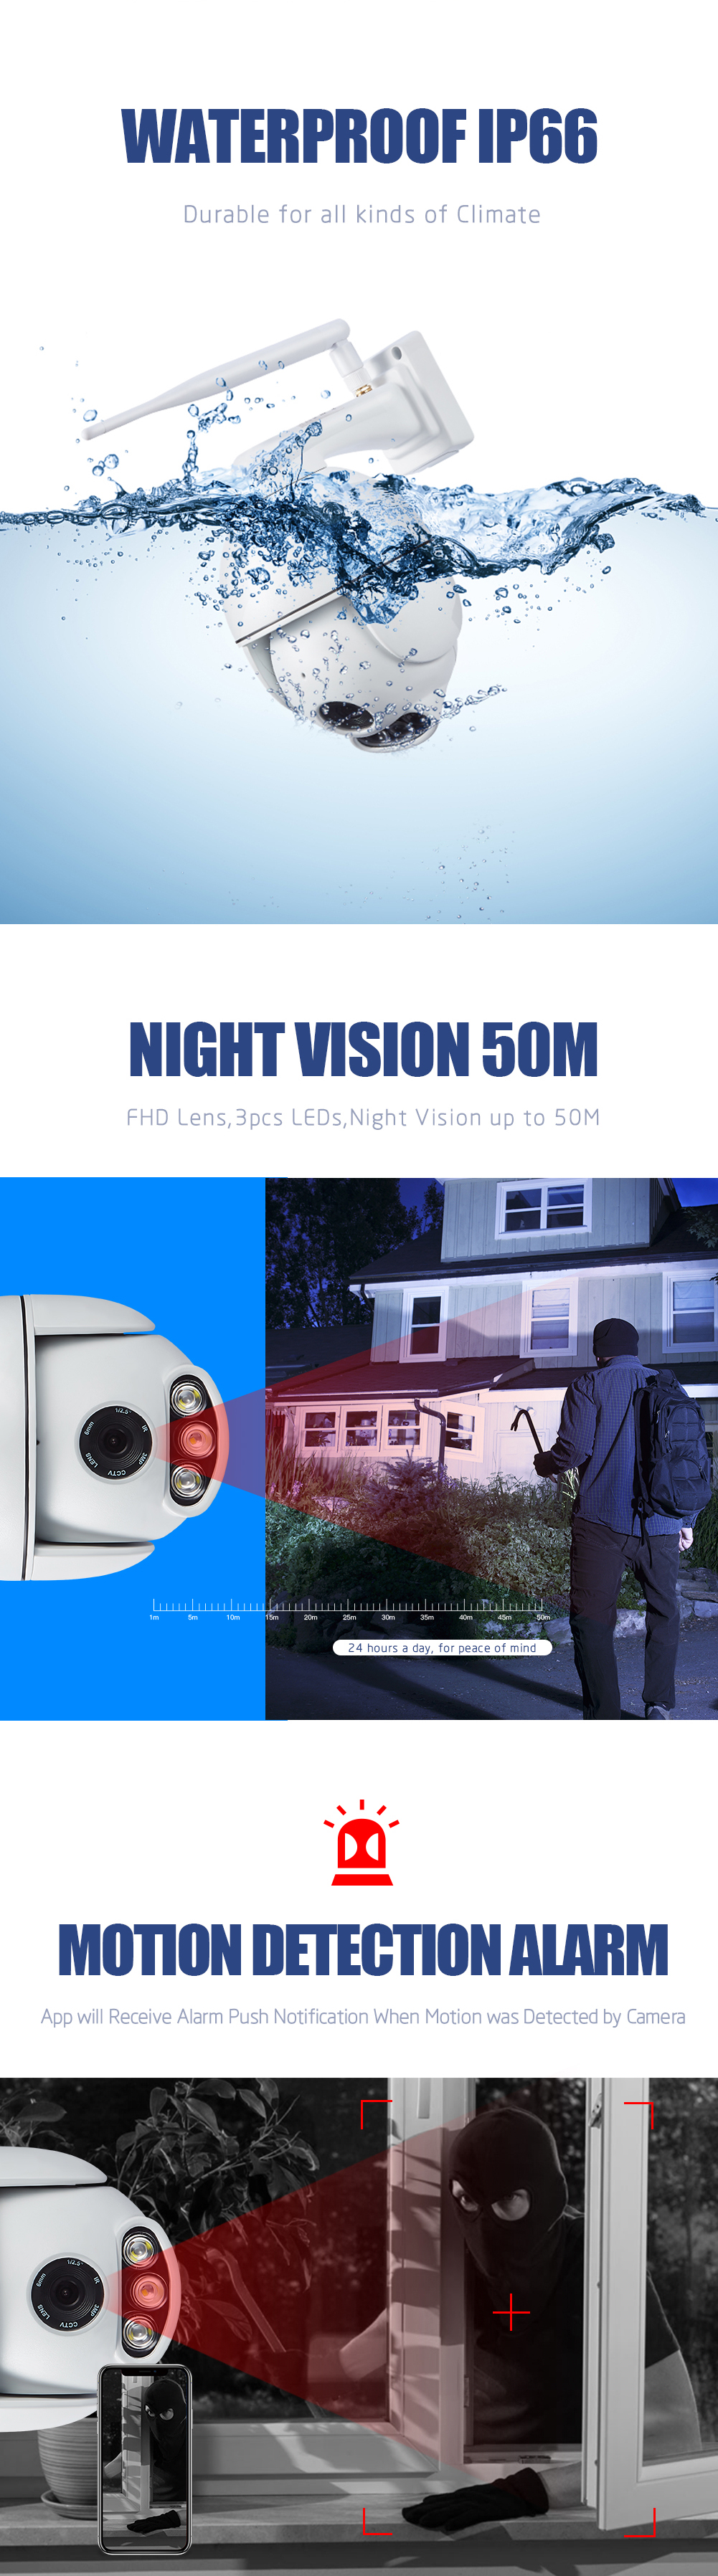 WANSCAM K54 Outdoor PTZ 4X Digital Zoom 1080P IP WiFi Camera Security Dome ONVIF P2P Night Vision Outdoor